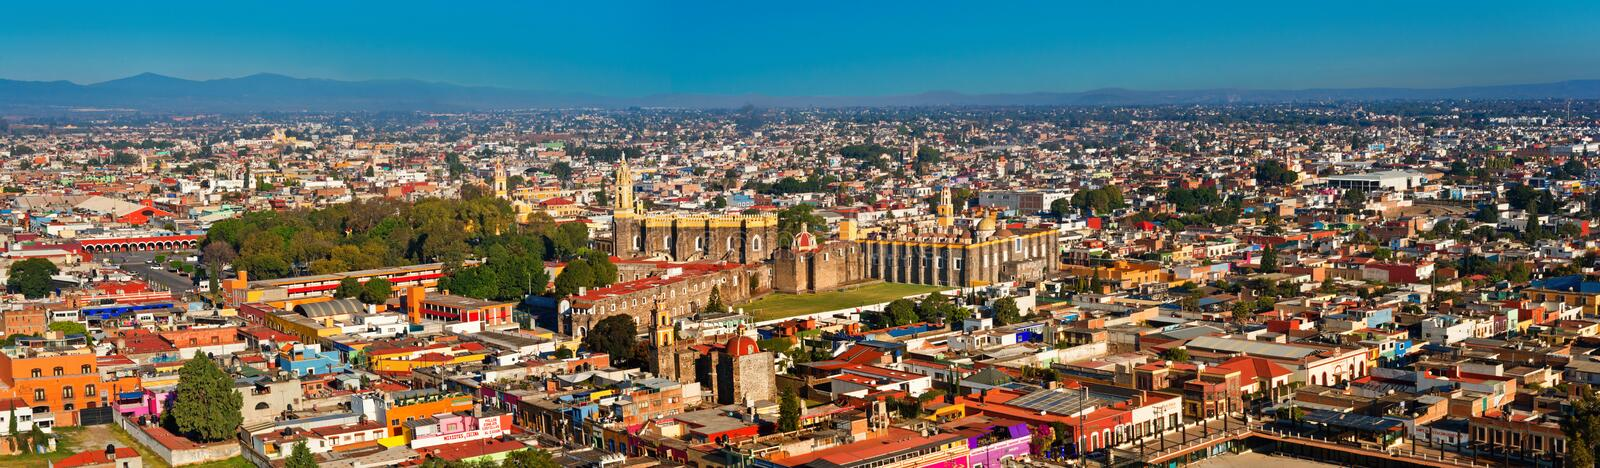 Aerial view of Cholula in Puebla, Mexico. Cholula, Mexico - November 27, 2016: Panoramic Aerial view of downtown and of Convent of San Gabriel in Cholula, Puebla royalty free stock photos